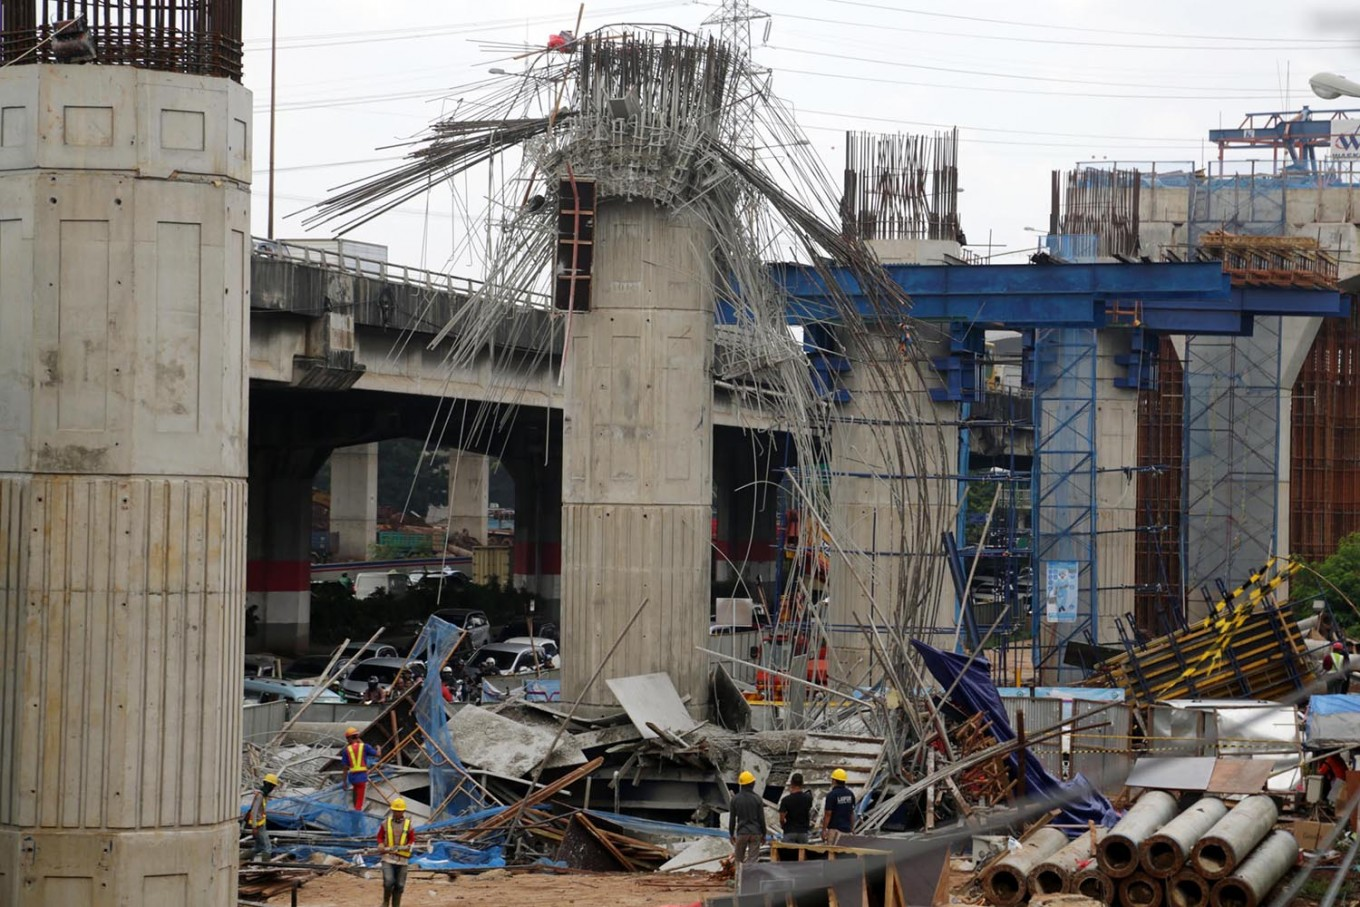 State-owned constructor faces reshuffle after accidents